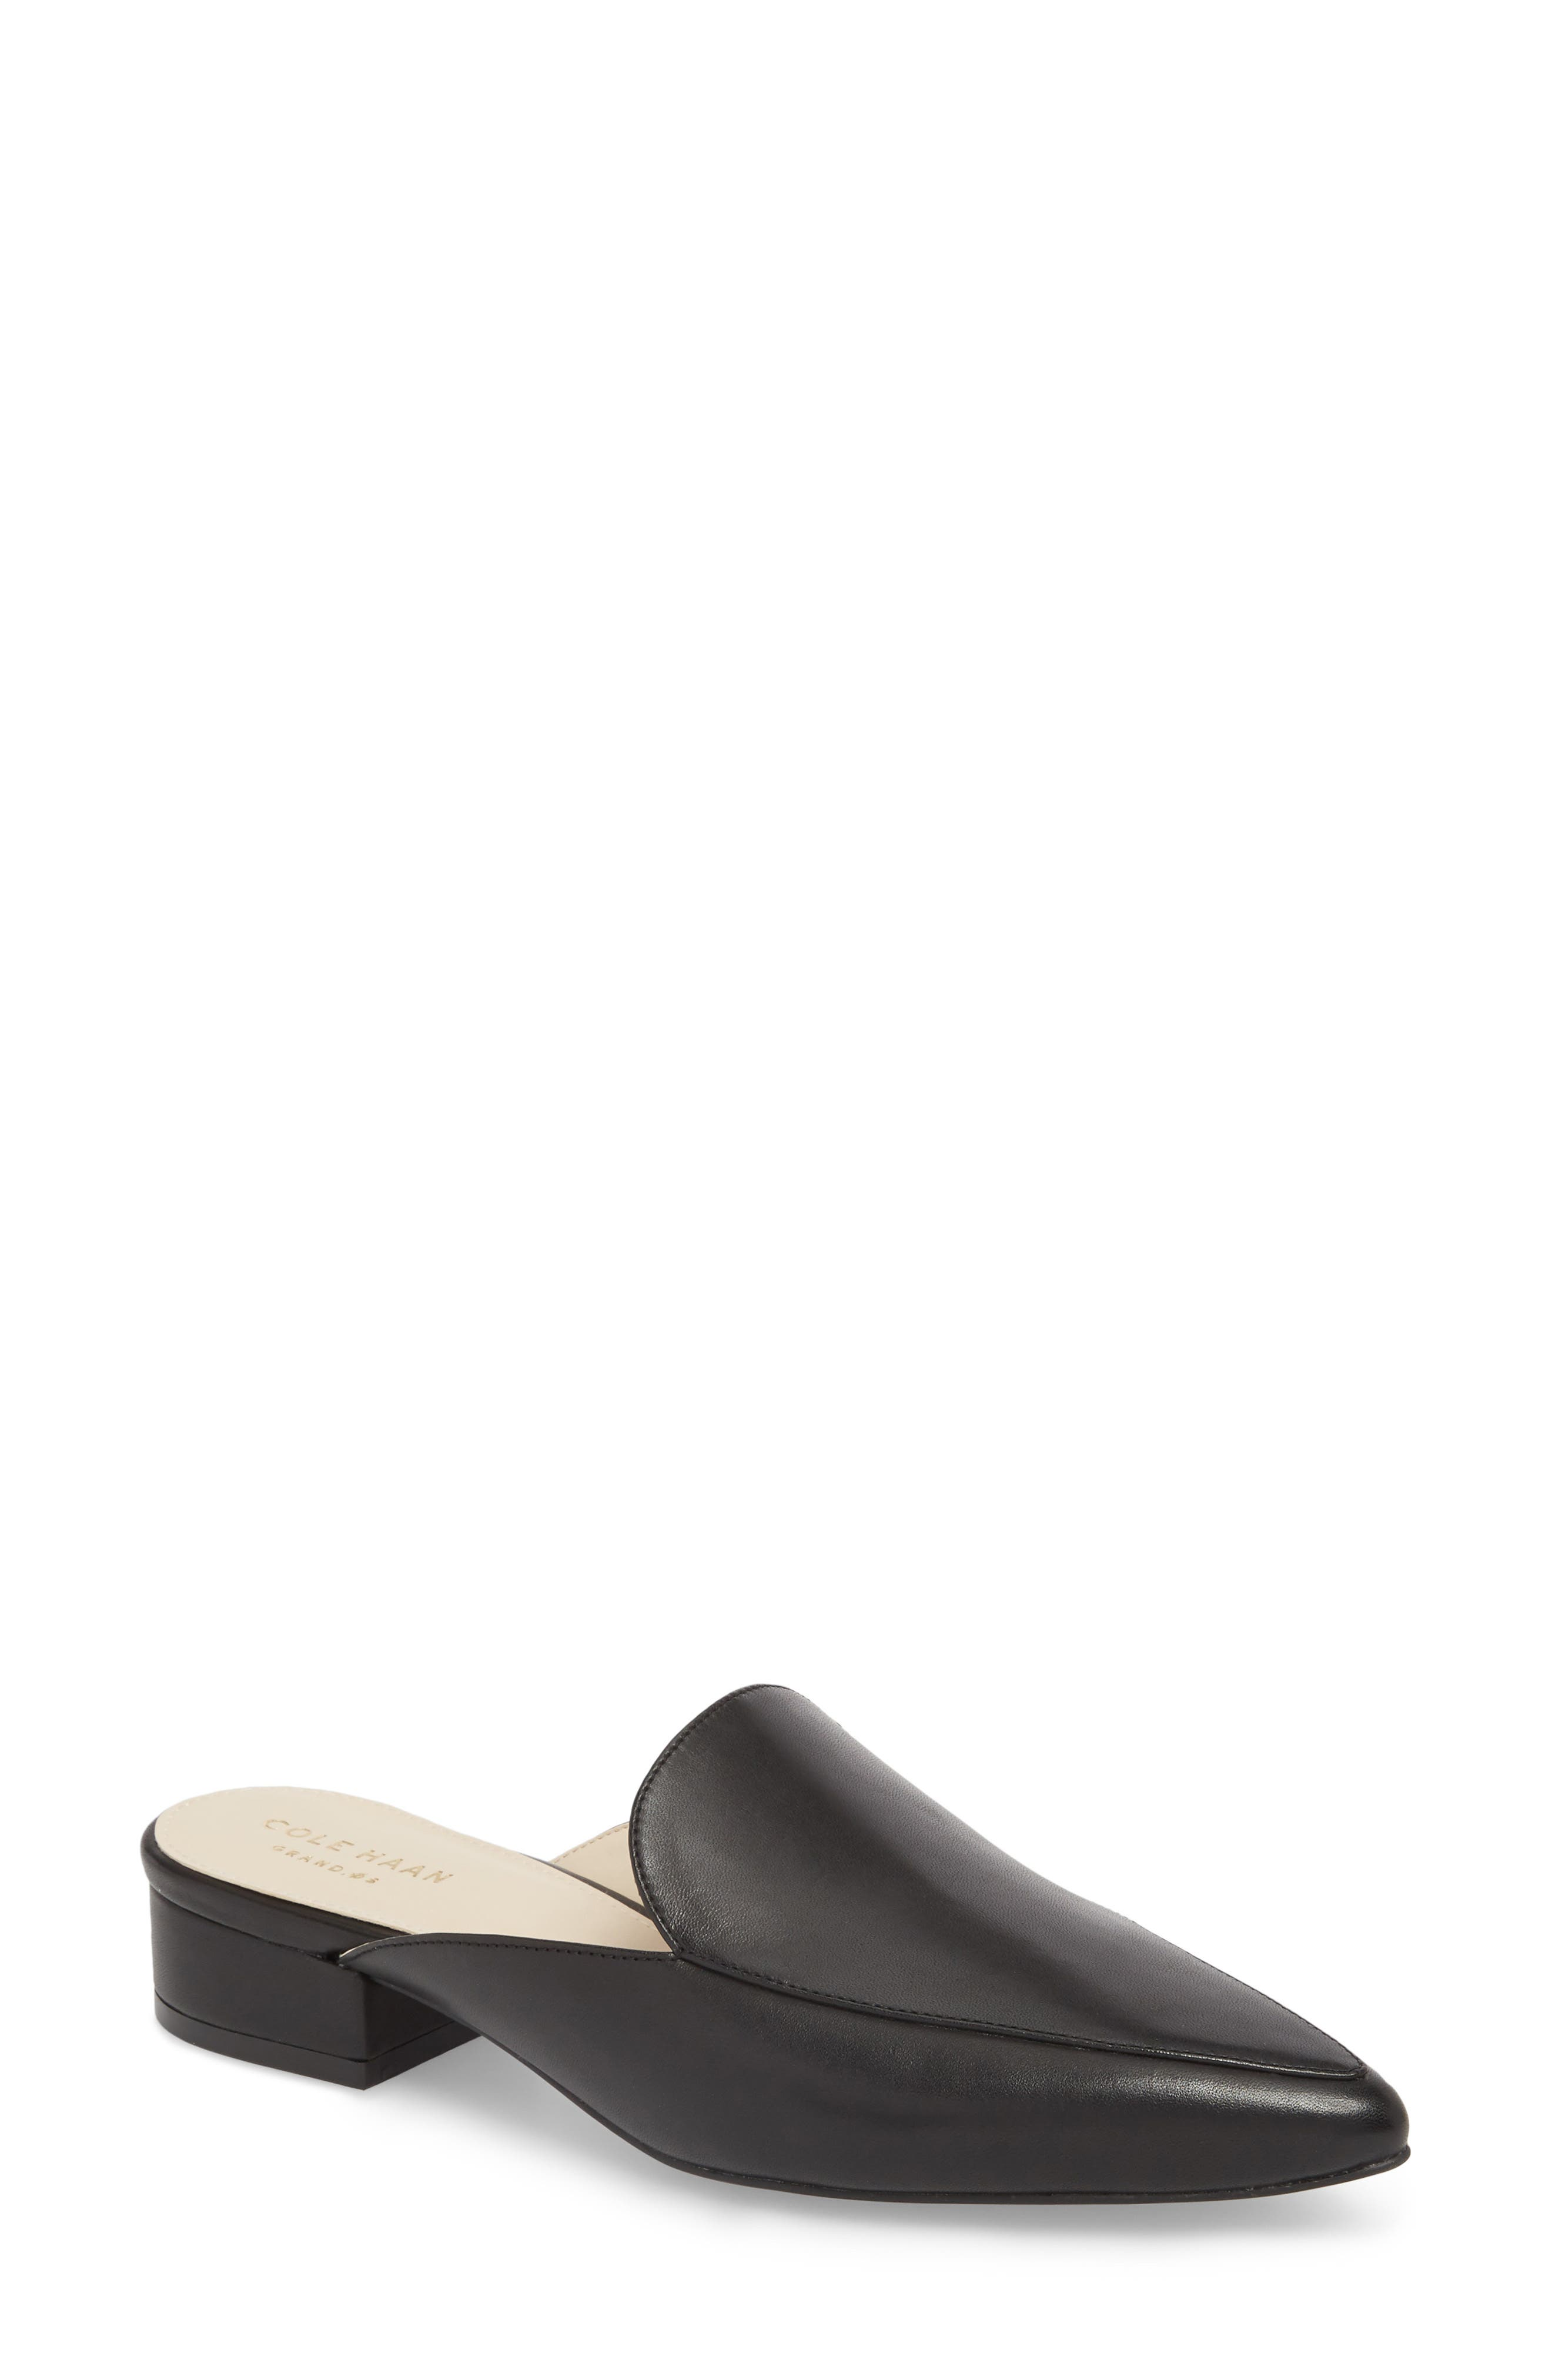 Piper Loafer Mule,                             Main thumbnail 1, color,                             Black Leather